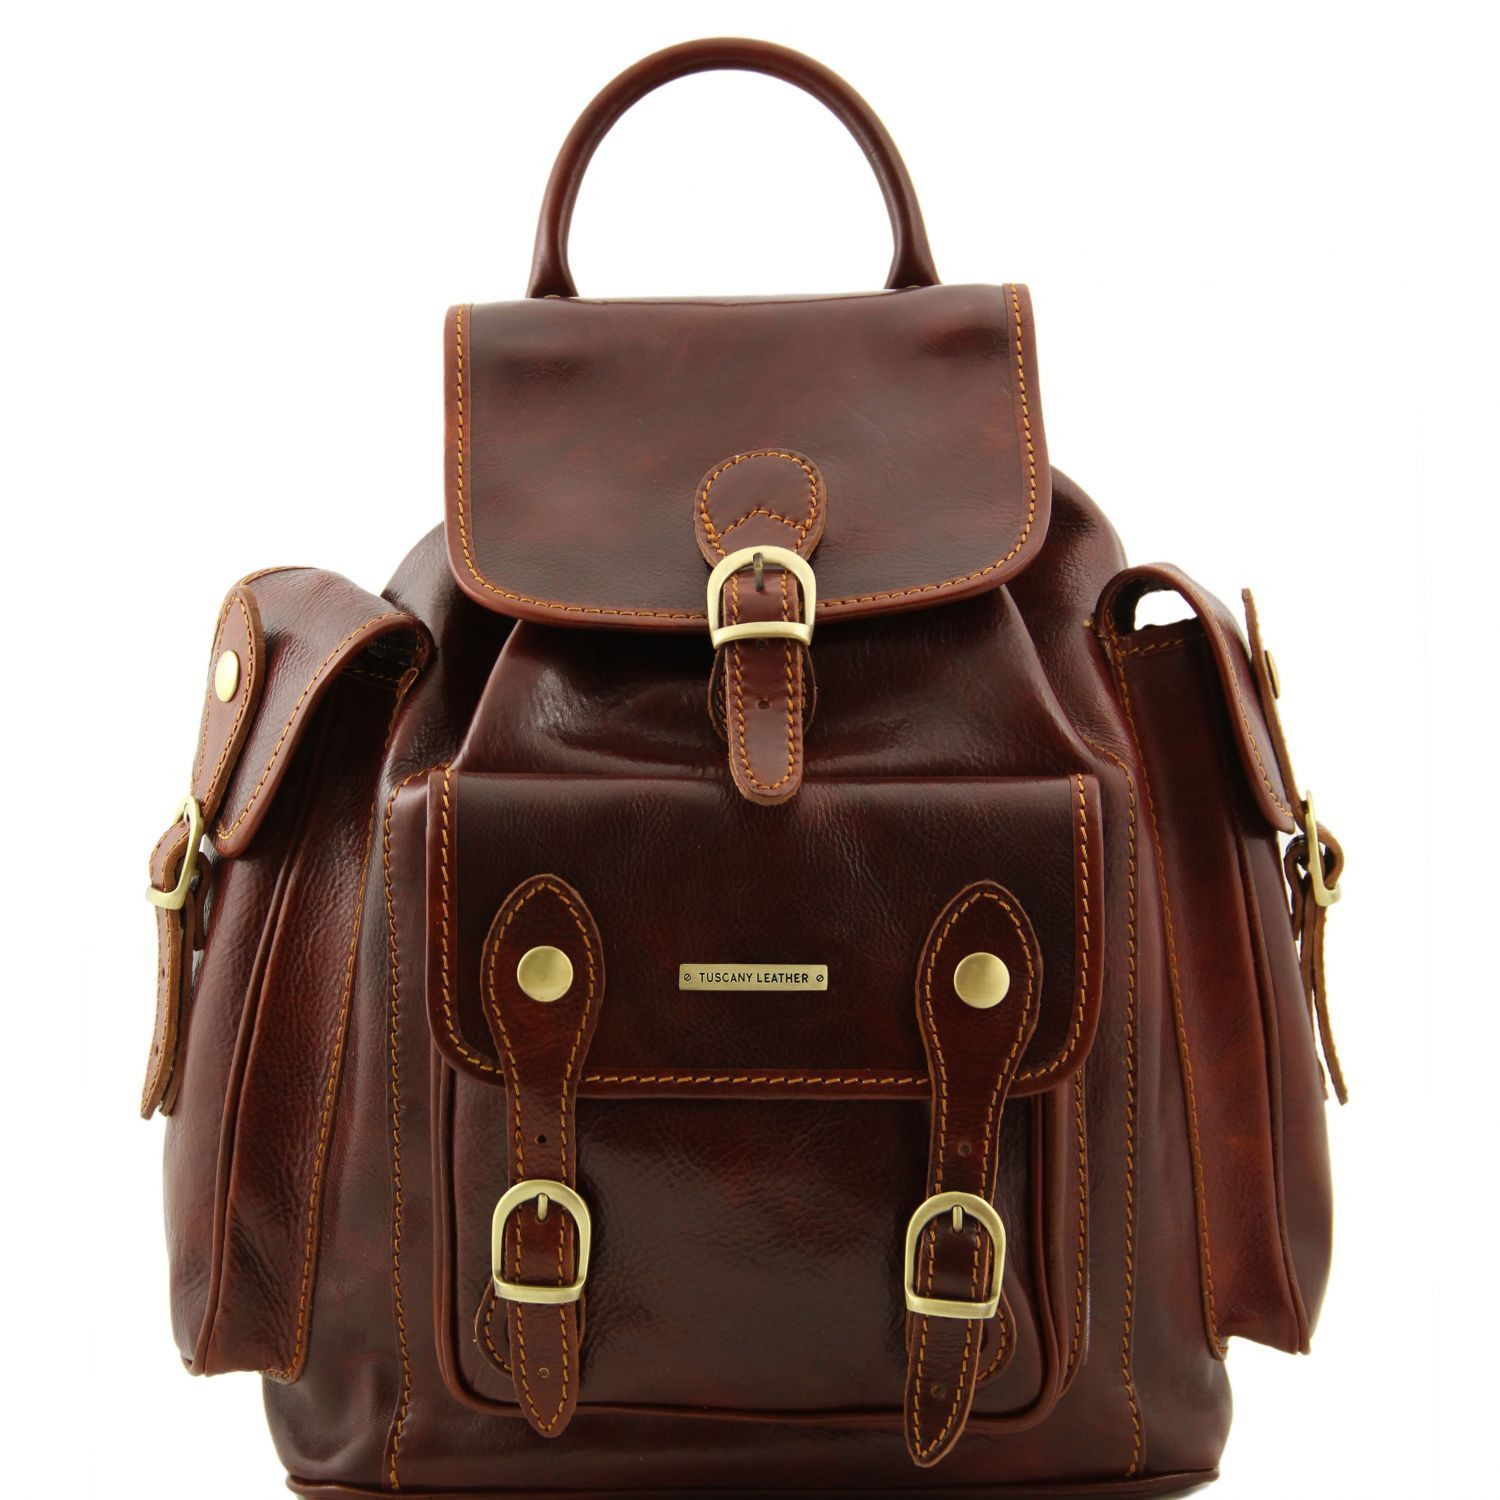 Tuscany Leather 'Pechino' Backpack Backpack Tuscany Leather Brown